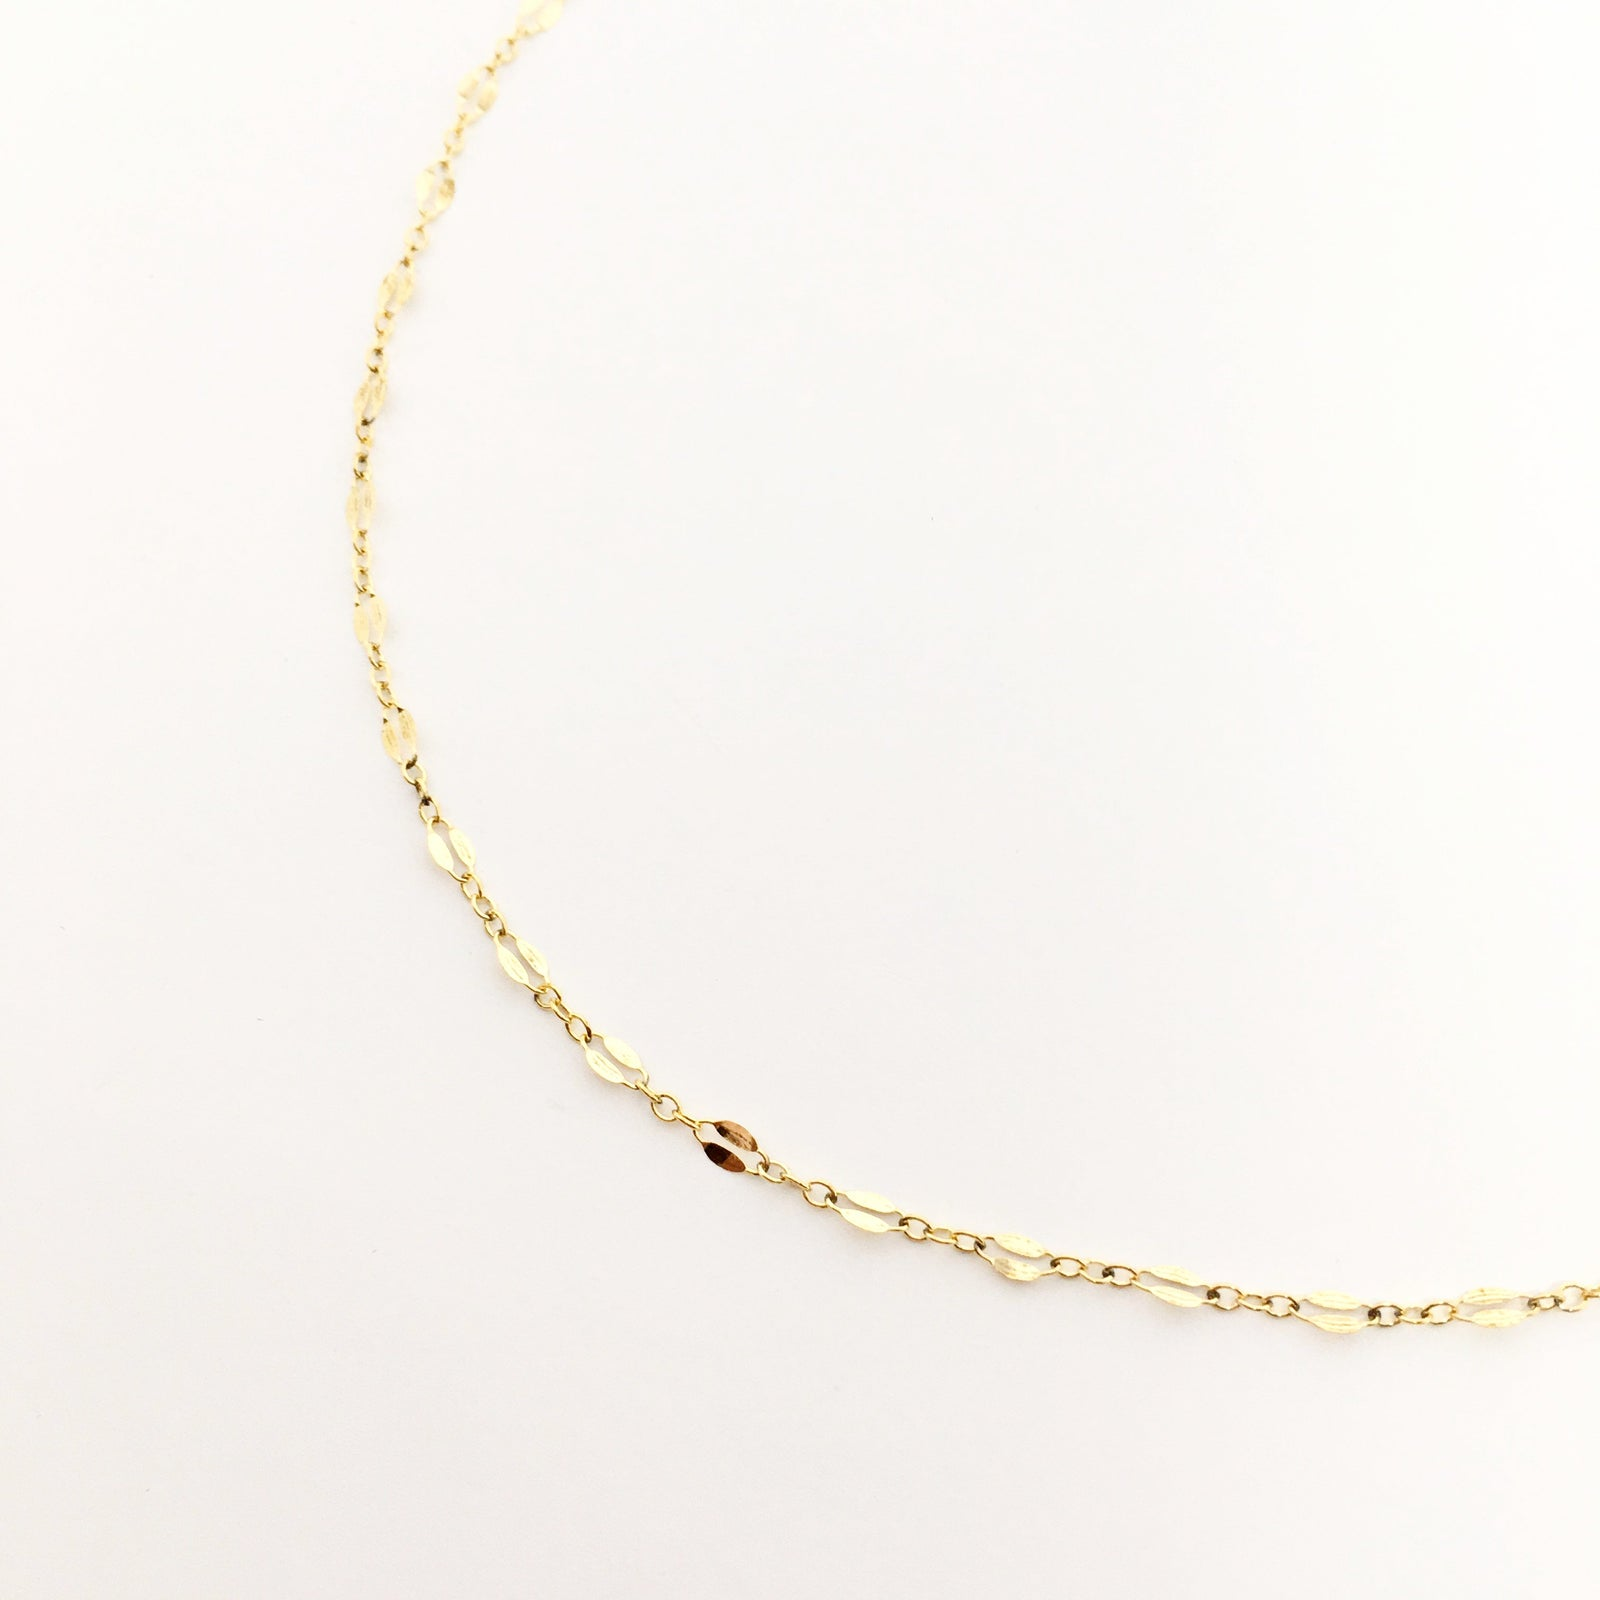 14K GOLD CHAIN NECKLACE